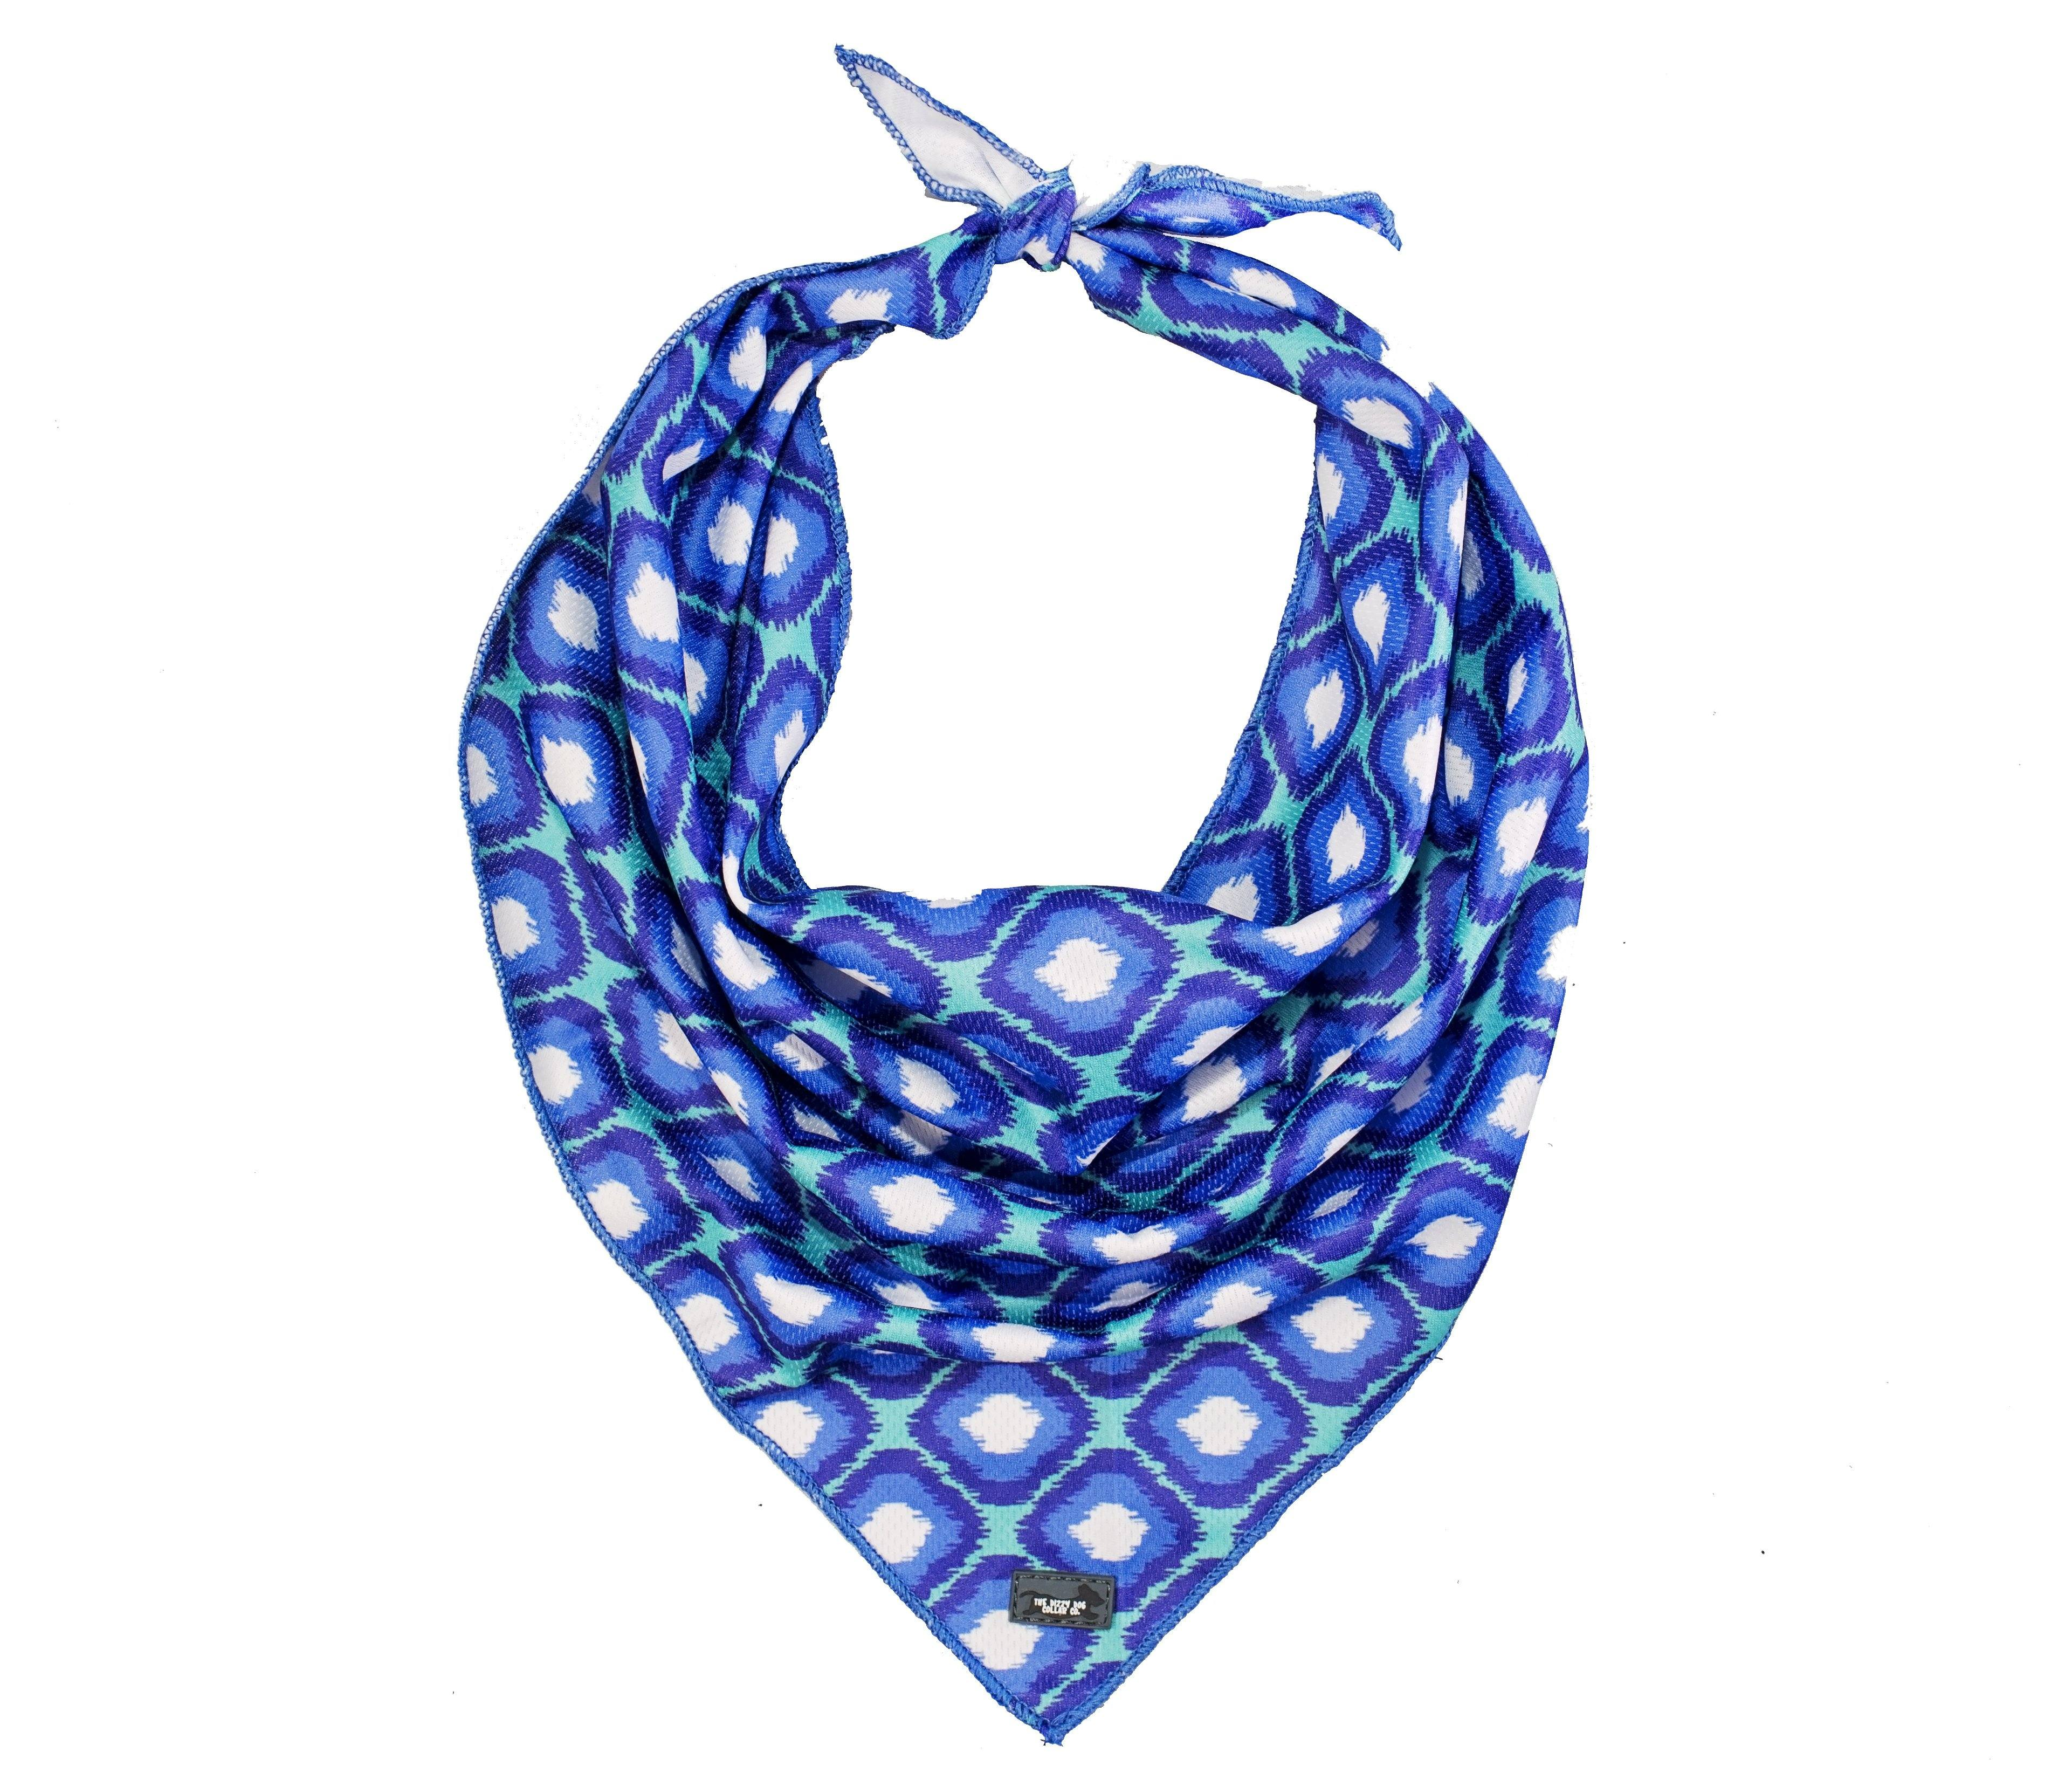 dog bandana, Australian made bandana for dog, blue ikat classic dog bandana